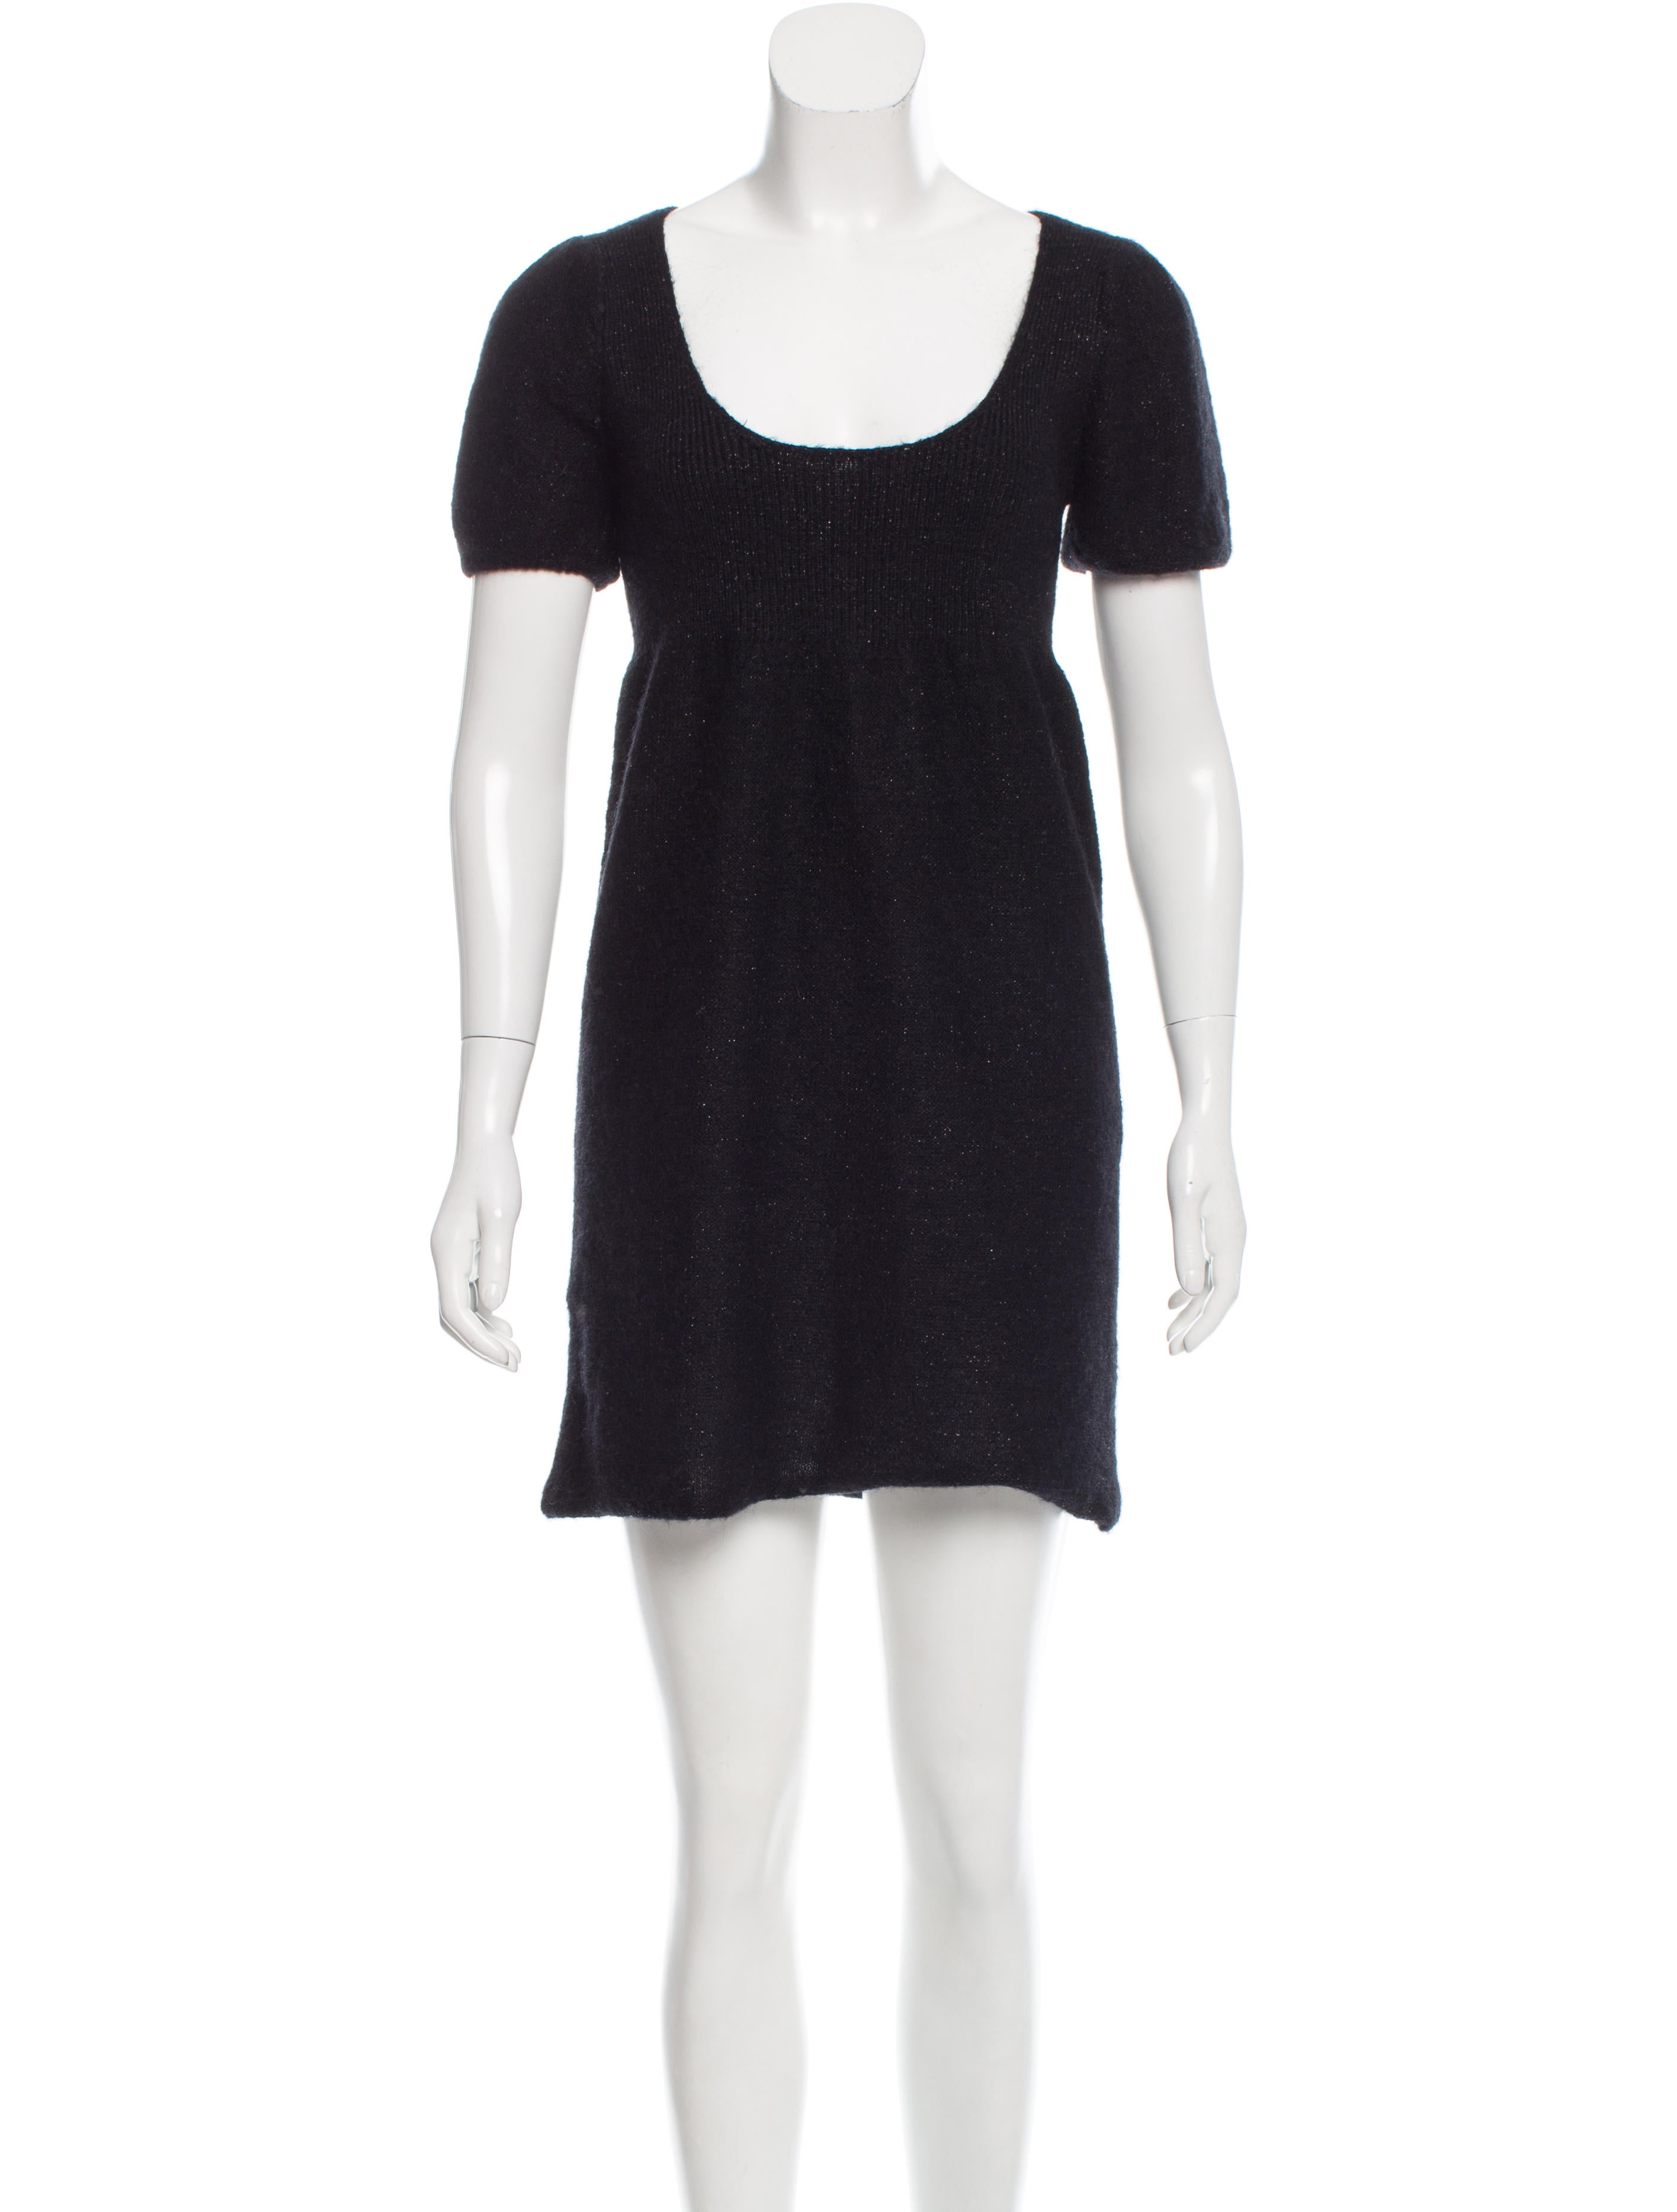 Iro Mohair-Blend Knit Dress - Clothing - WIR31991 The RealReal